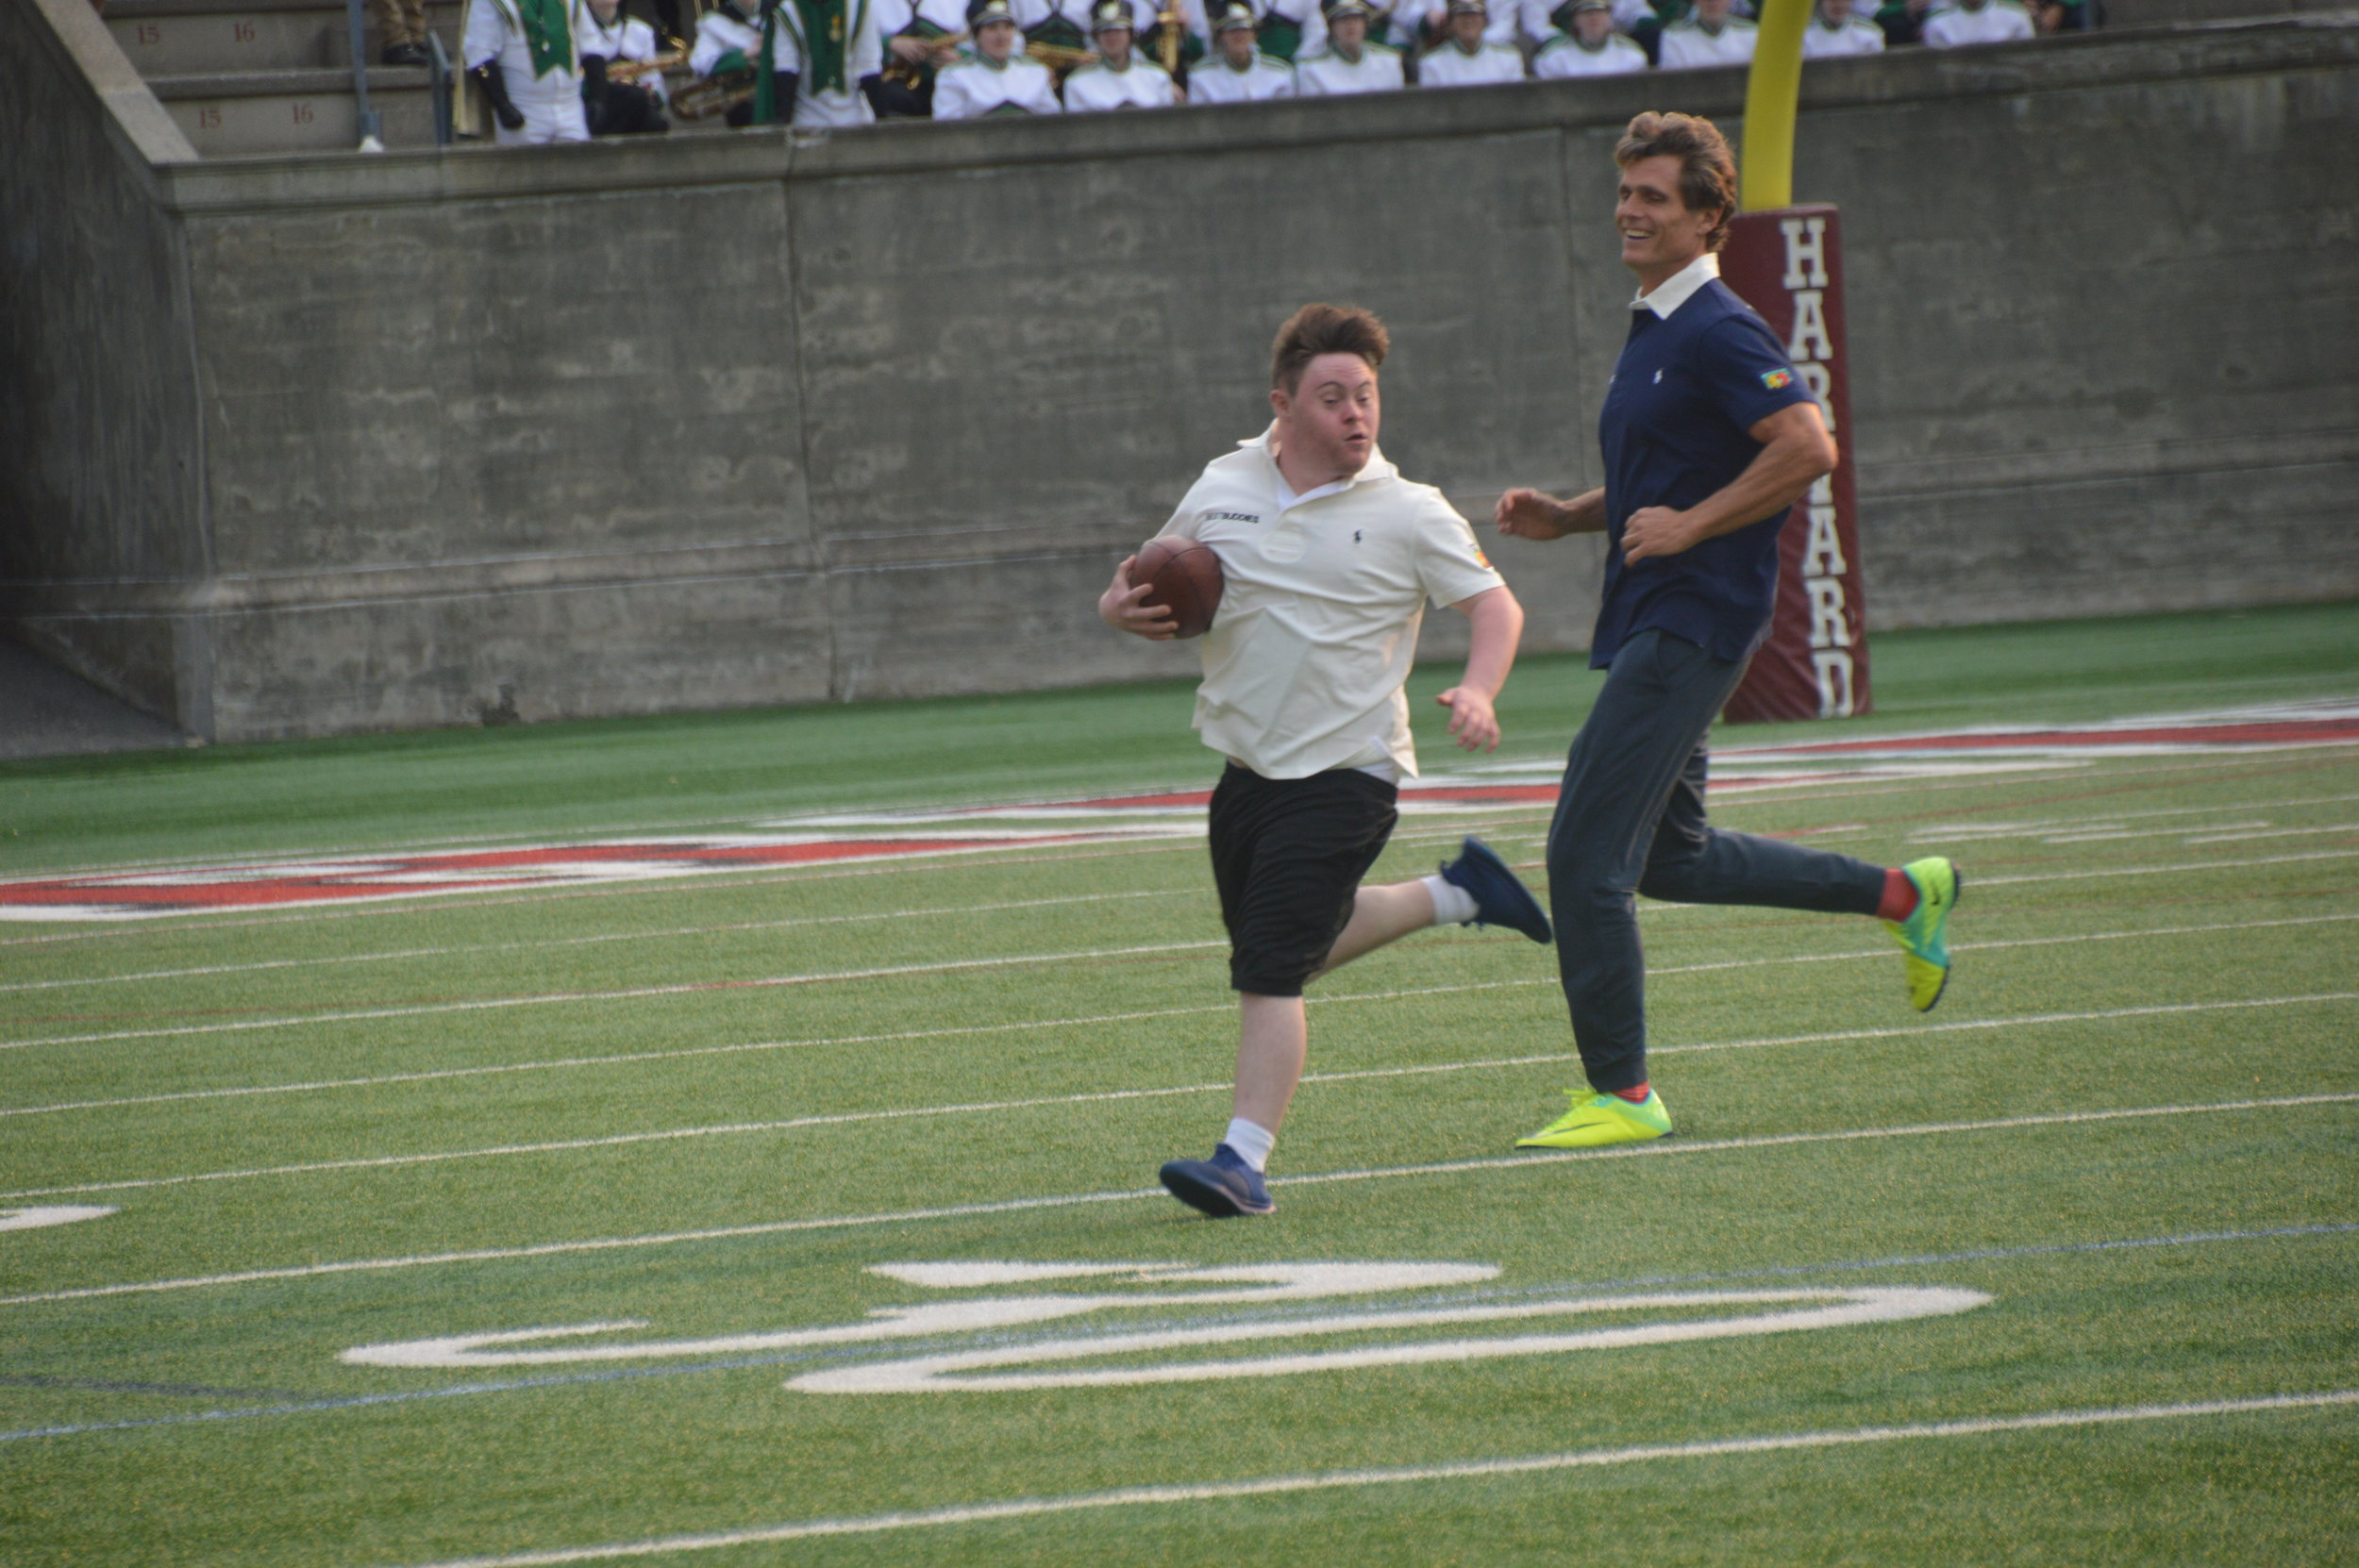 Anthony Kennedy Shriver chases after an athlete during the 20th Annual Tom Brady Best Buddies Football Challenge.